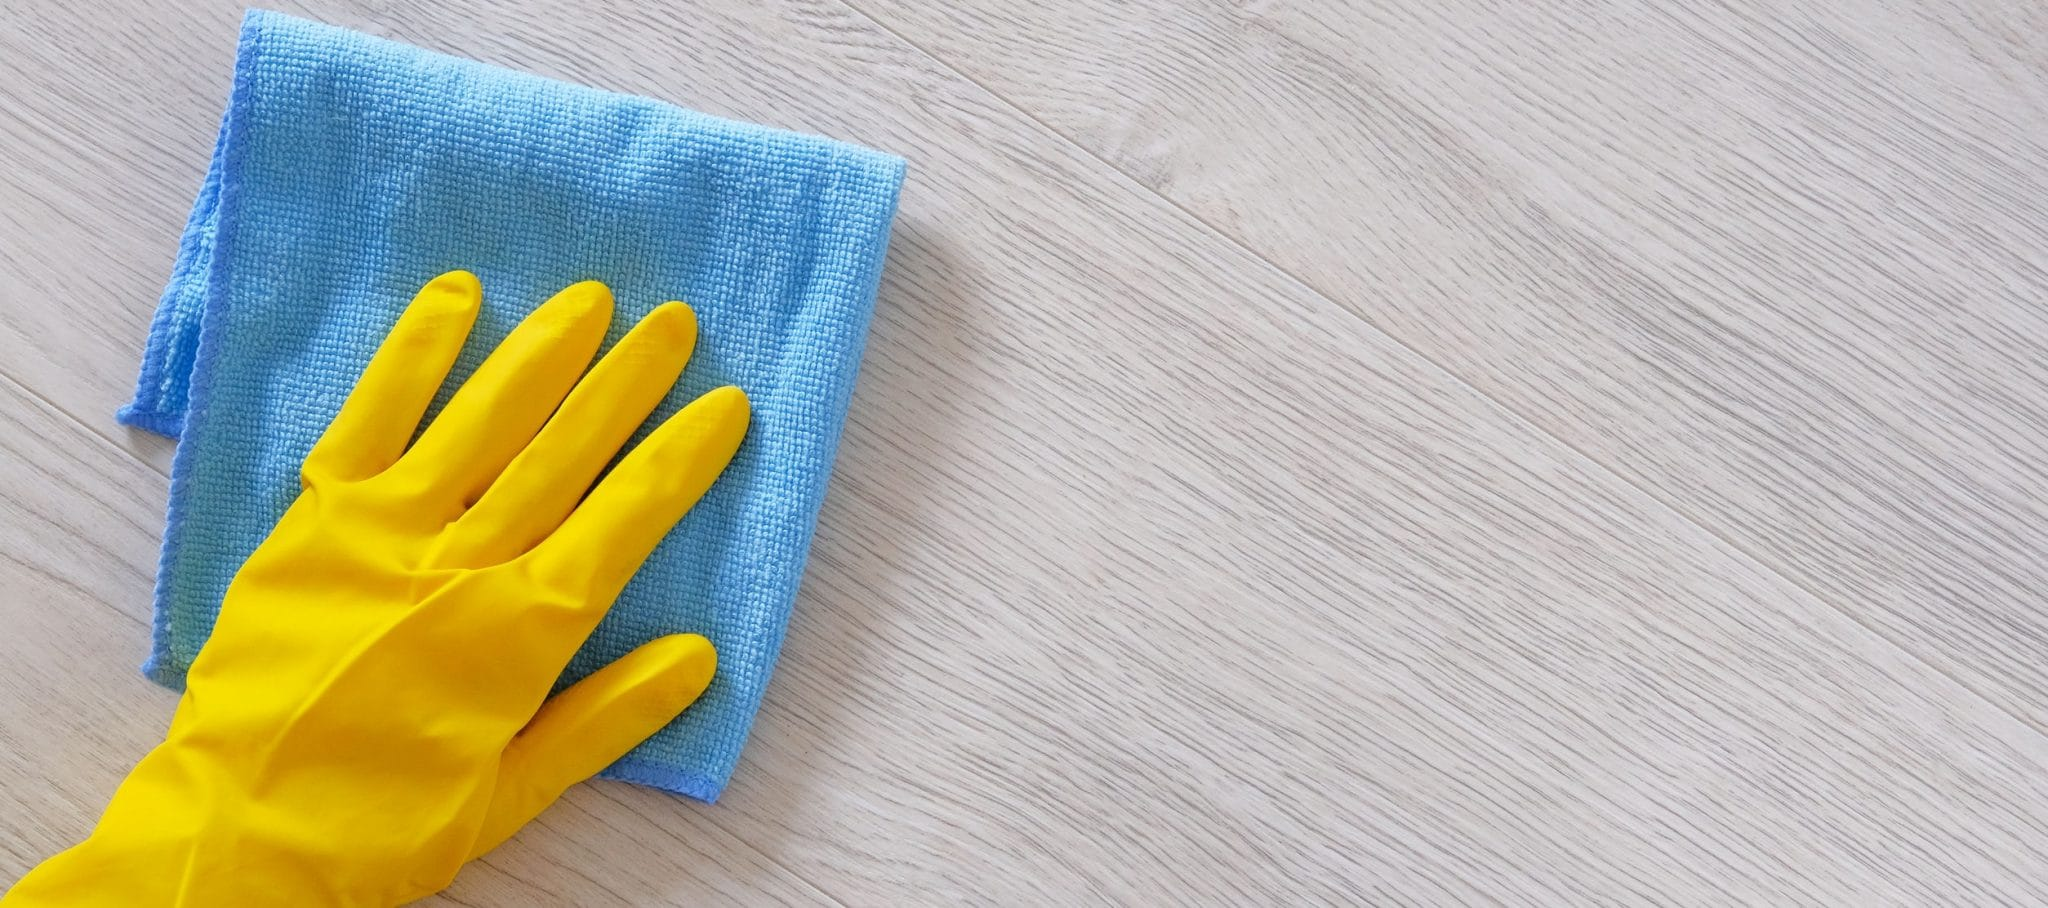 Hand in rubber protective glove with blue microfiber cloth is wiping floor